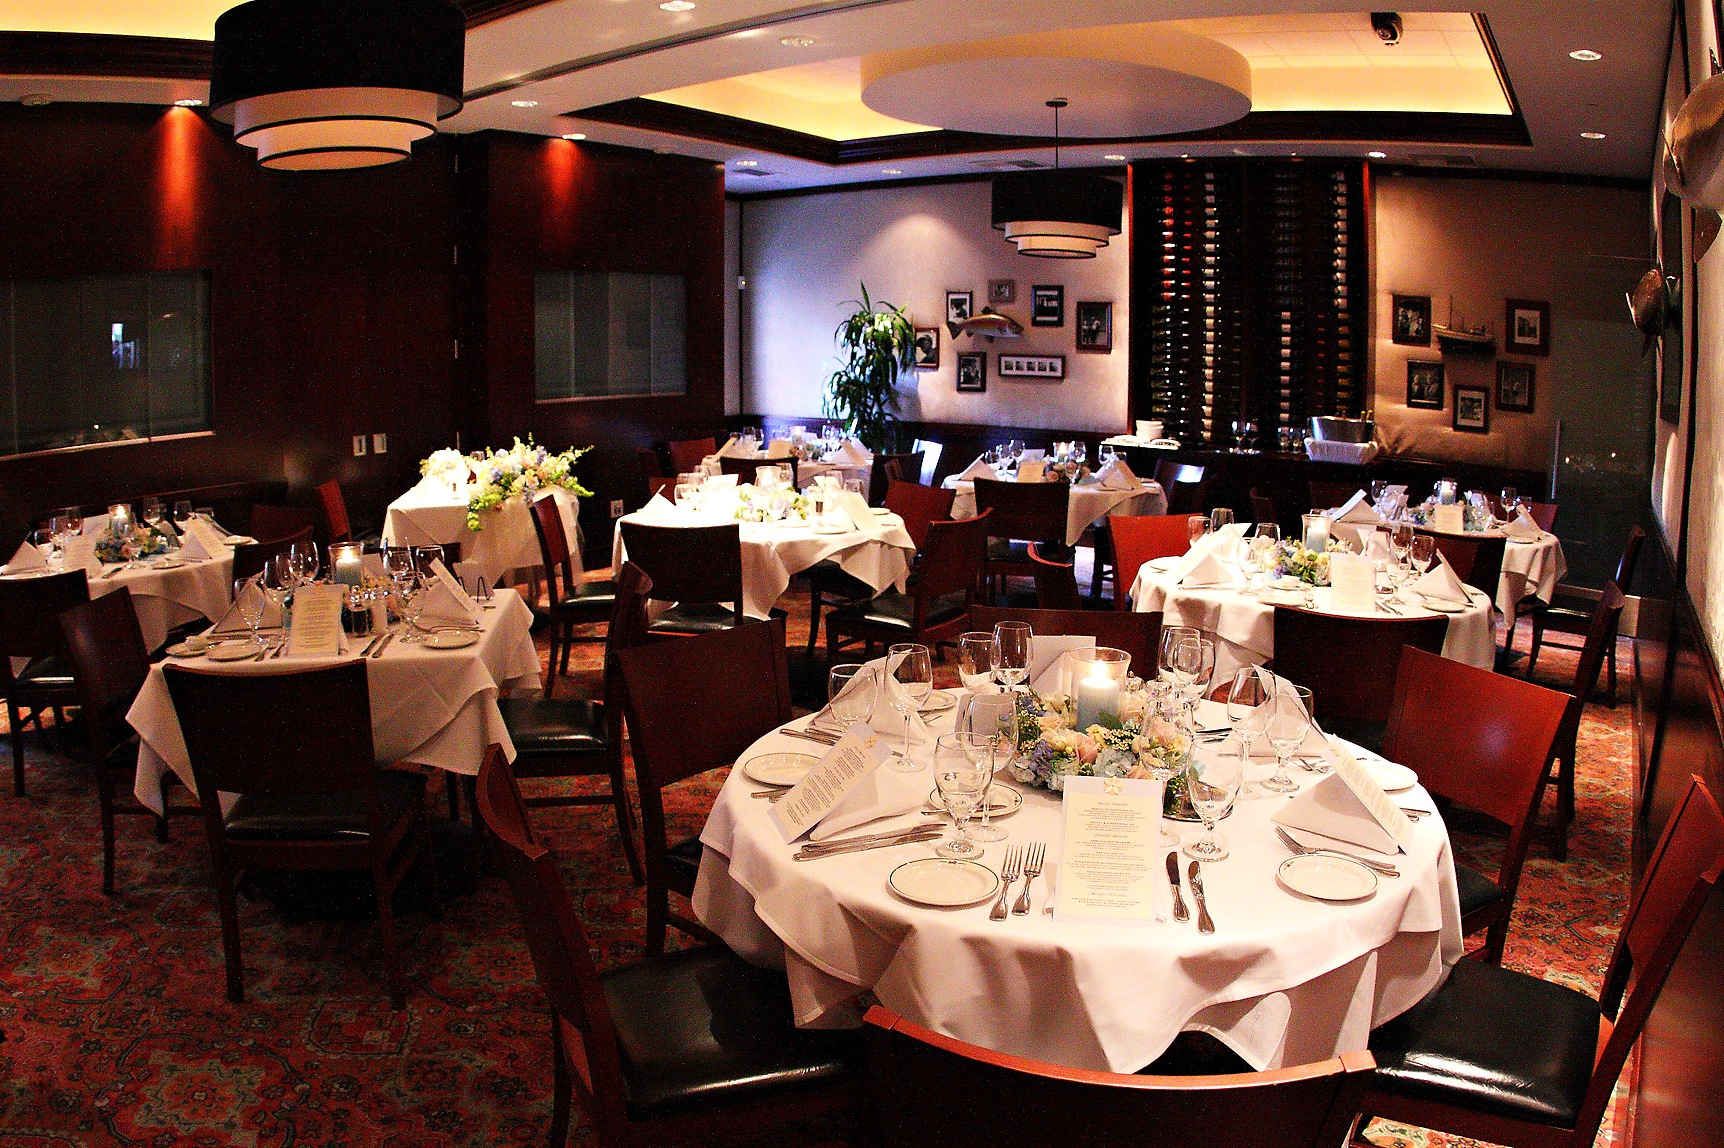 Truluck's LaJolla private dining room - The Sonoma Room